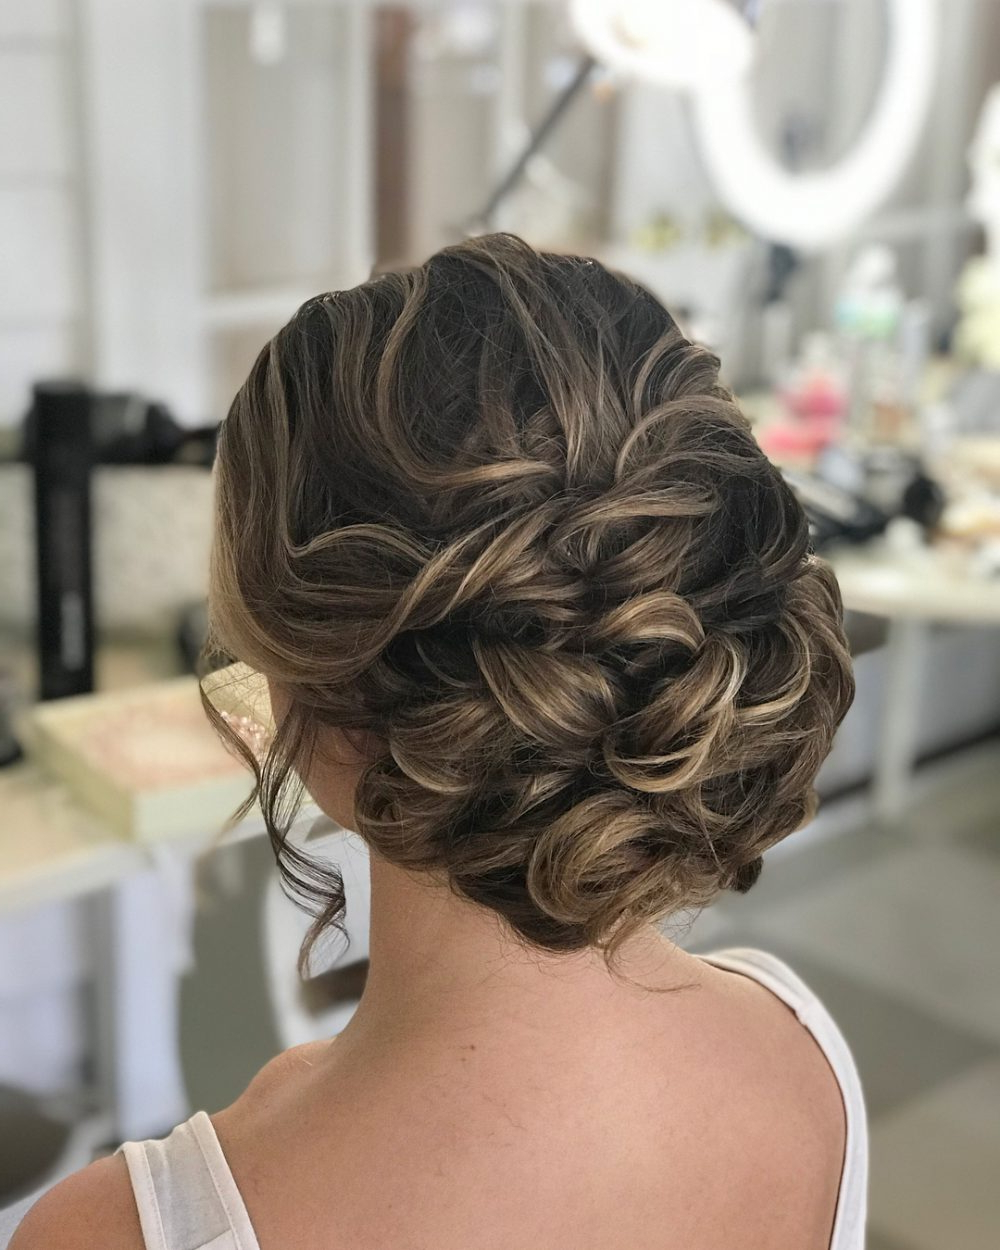 15 Gorgeous Wedding Updos For Brides In 2019 With Regard To Most Up To Date Brushed Back Bun Bridal Hairstyles (Gallery 20 of 20)